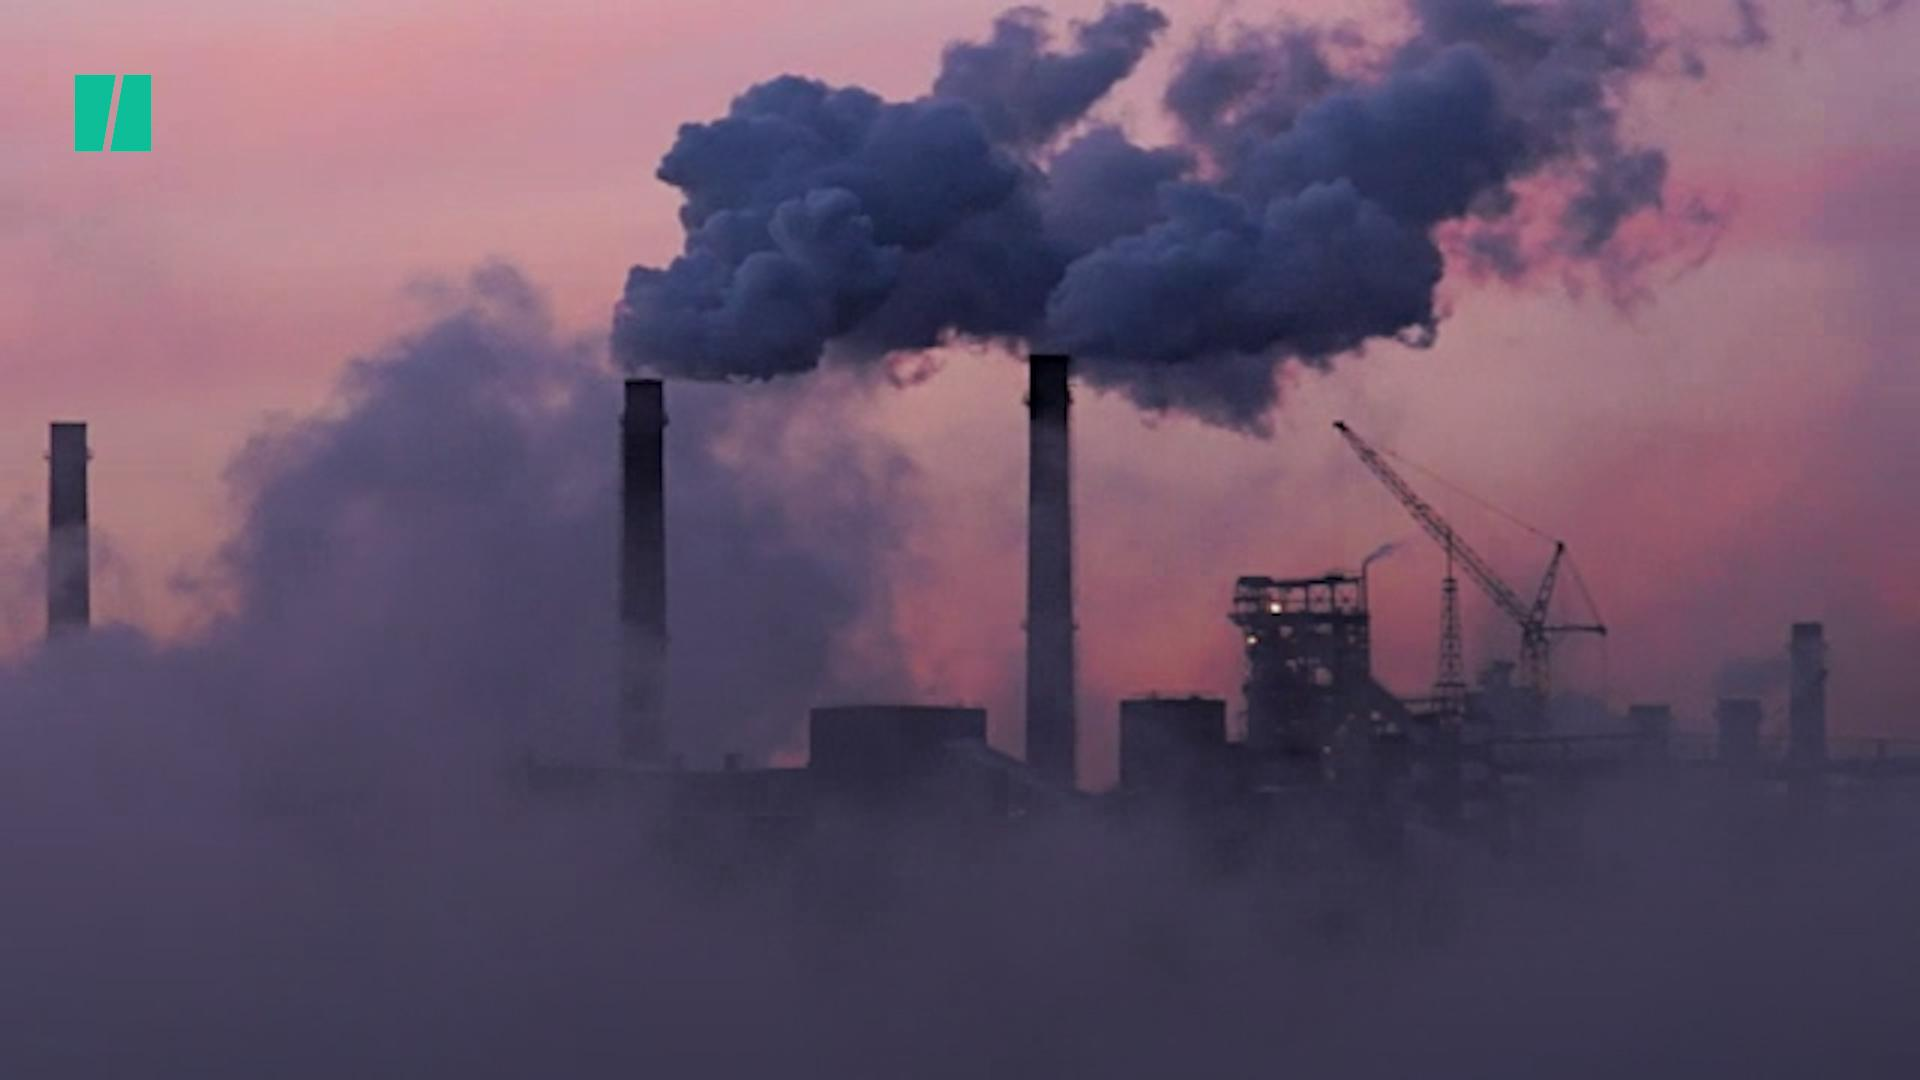 Parliament Declared A Climate Emergency – Now It Must Ditch Fossil Fuels